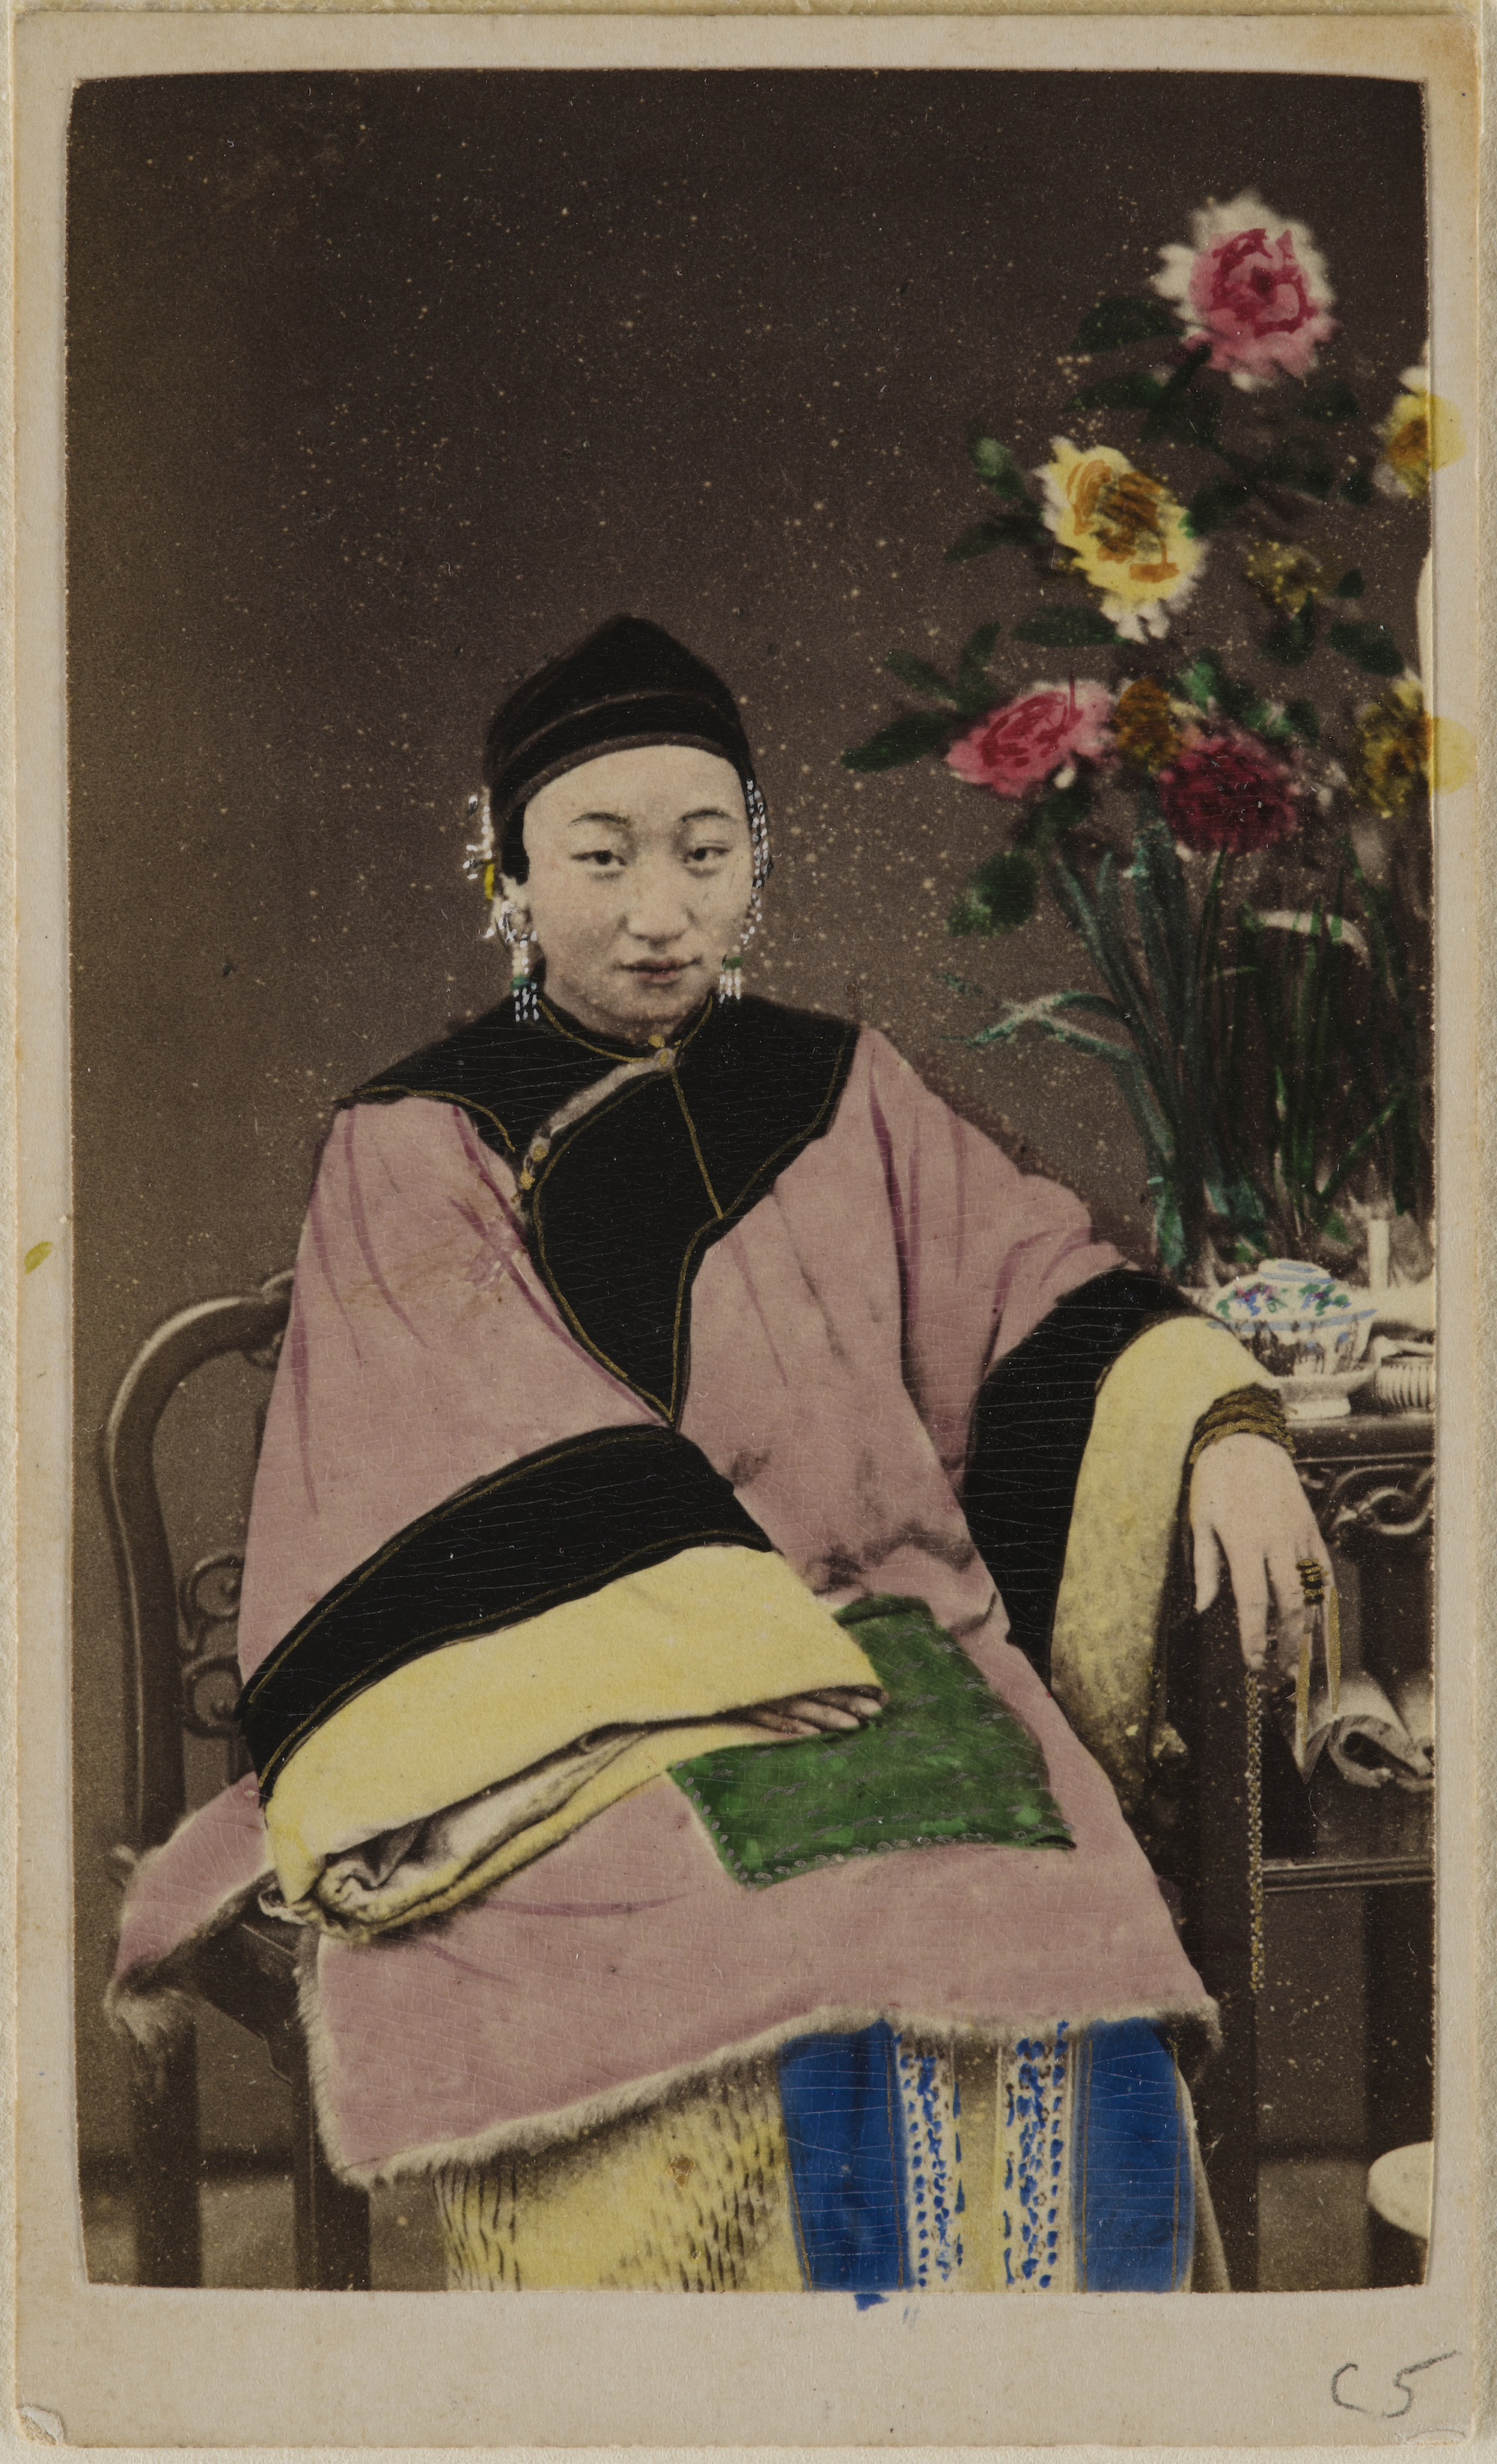 サン・ヒン「座った女性」=1860年ごろ/The Loewentheil Collection of China Photography